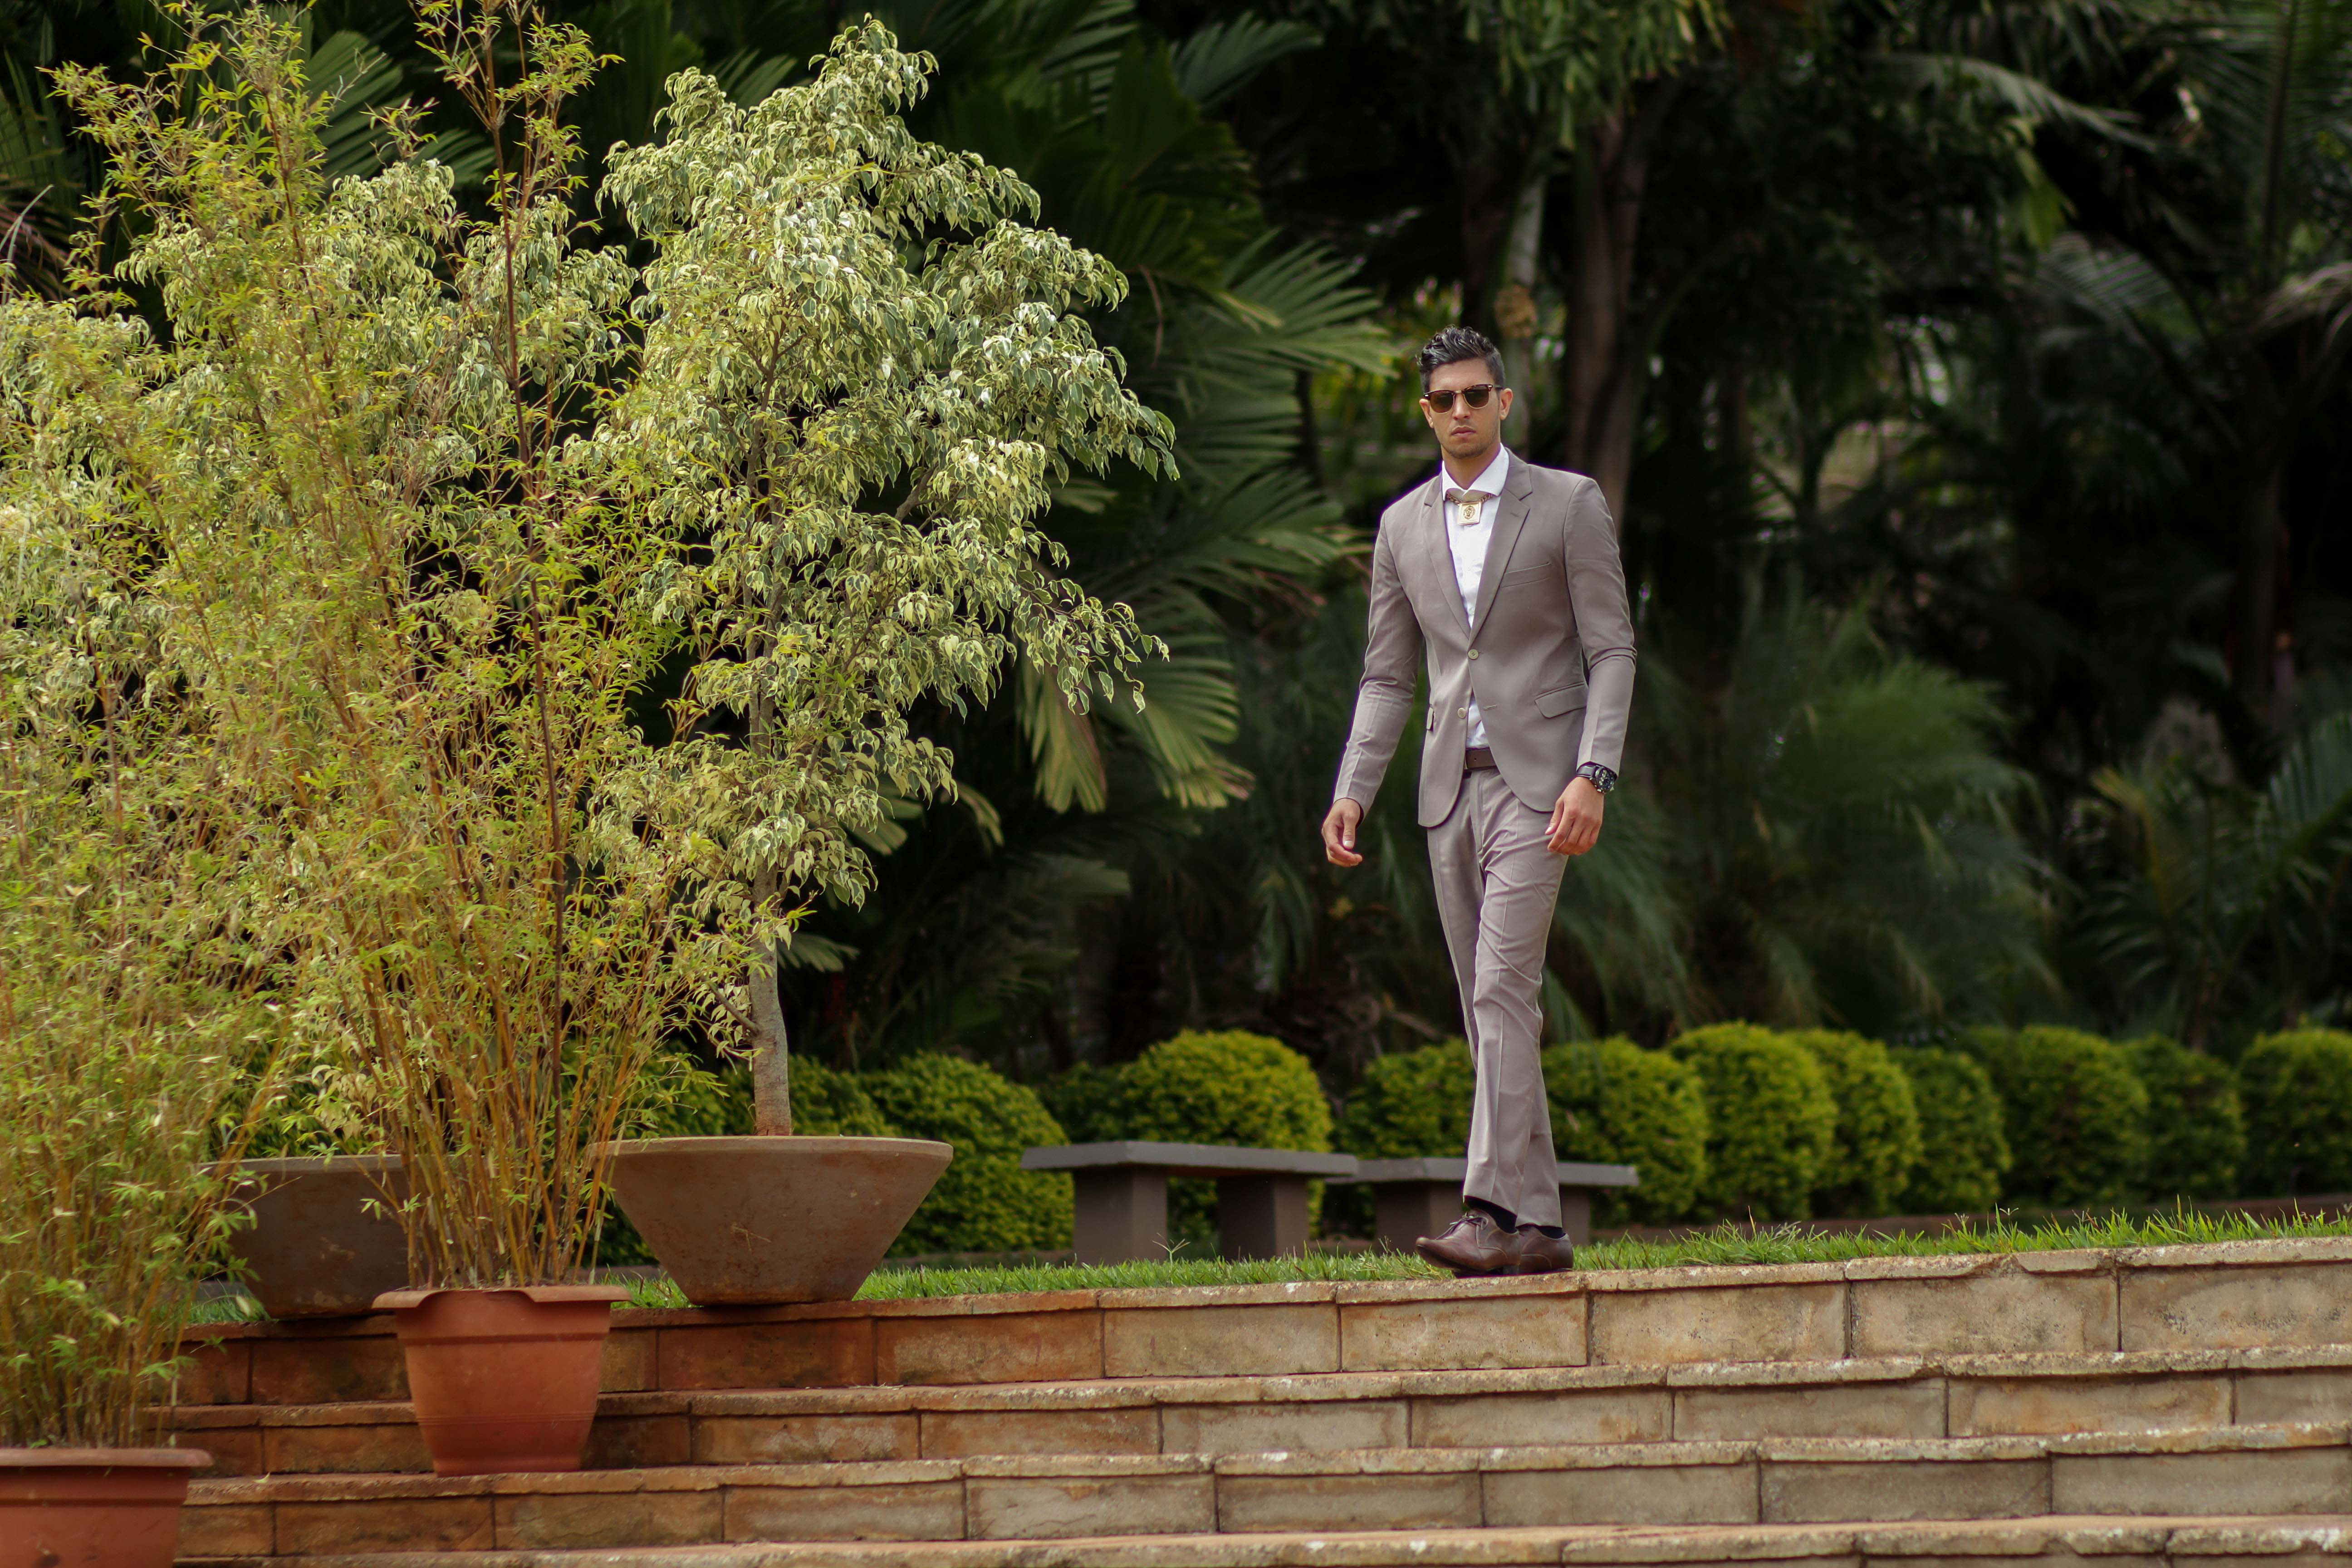 Adel Aljaedy dressed by Kenyan Stylista Franklin Saiyalel at Zen Gardens